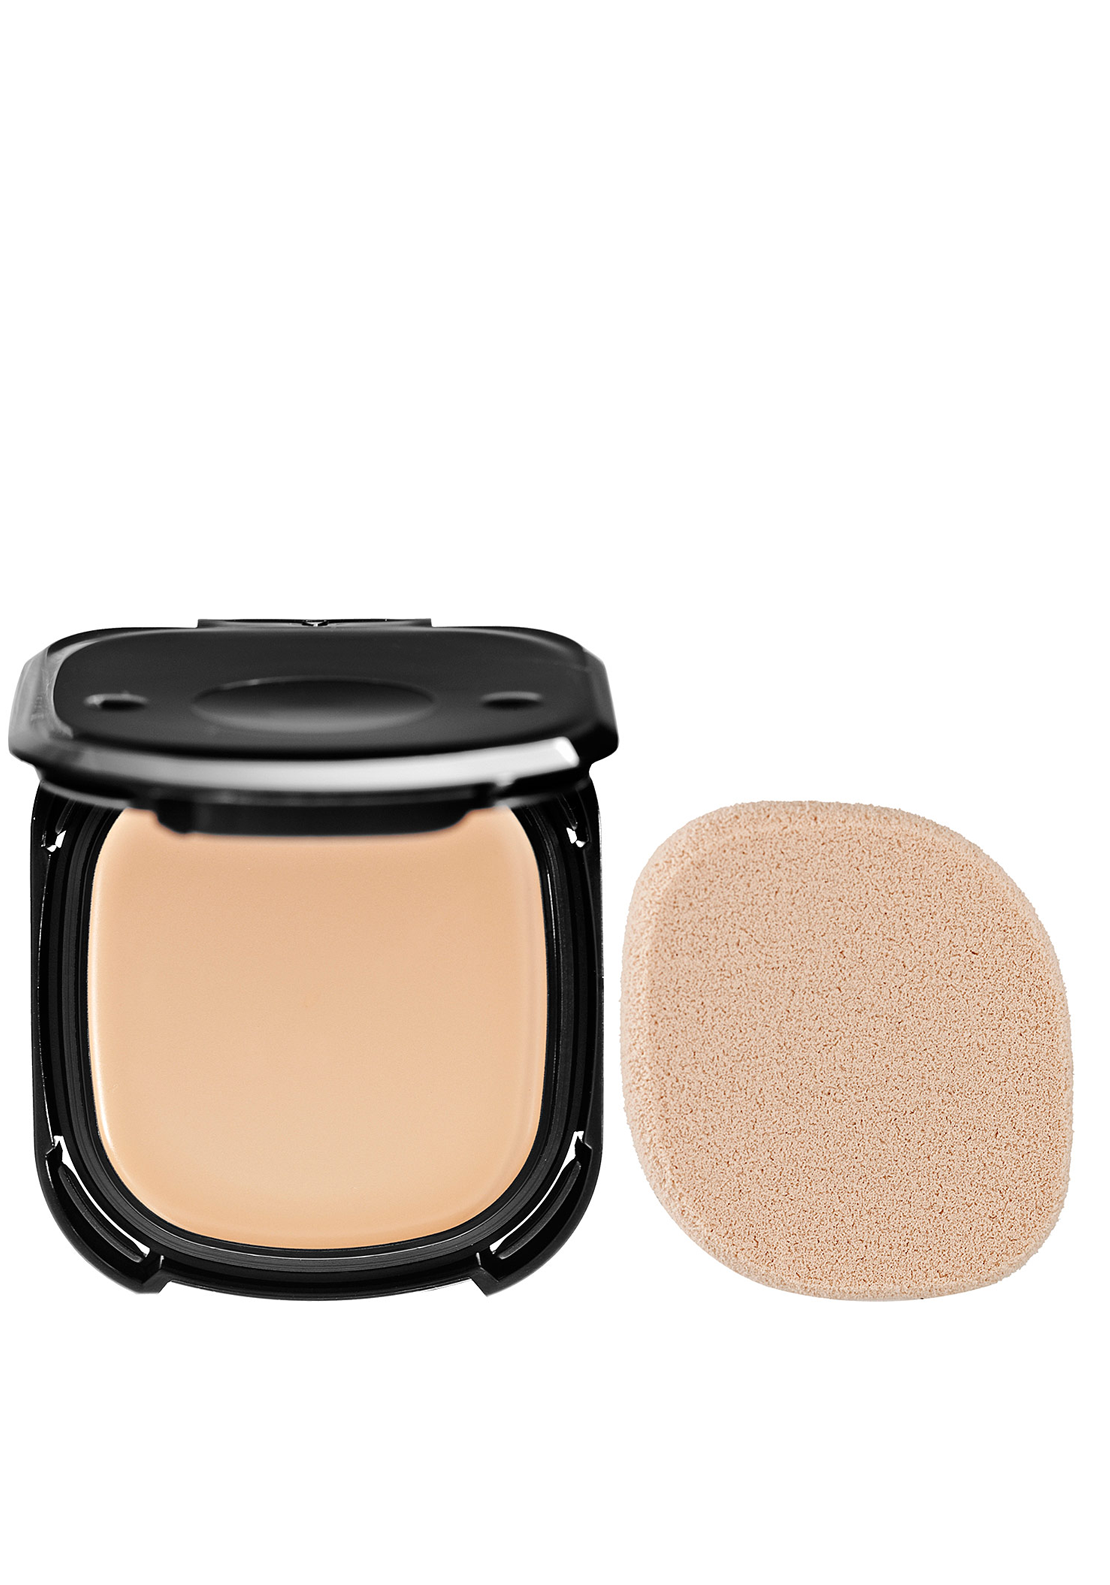 Shiseido Advanced Hydro-Liquid Compact (Refill) with SPF10, Natural Light Beige B20